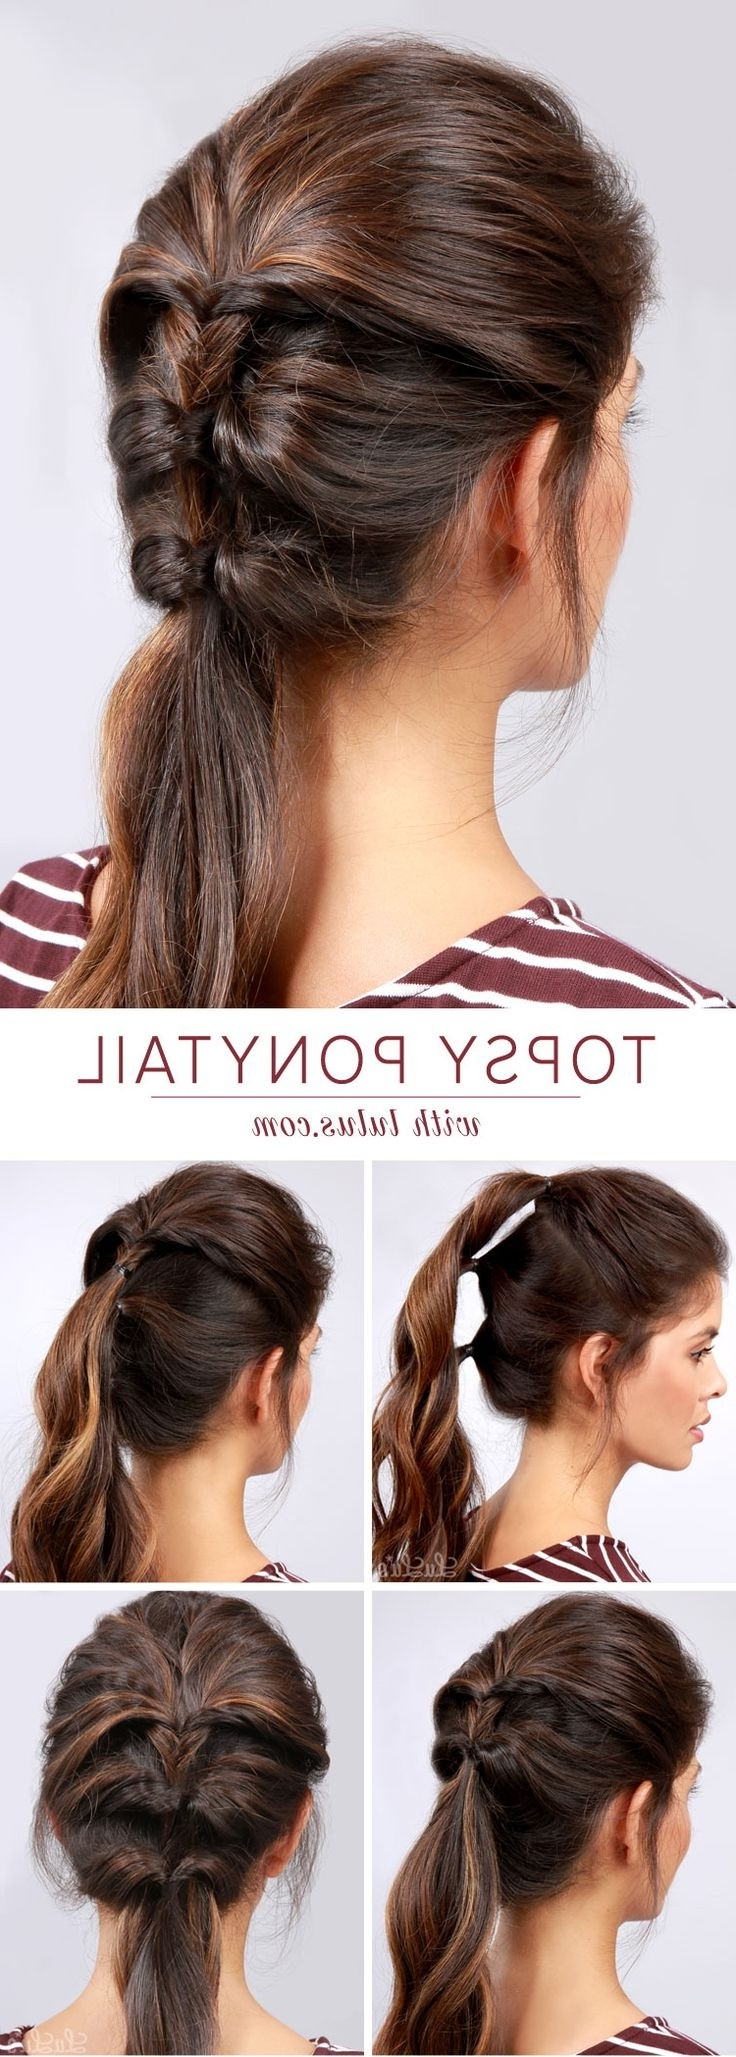 22 Great Ponytail Hairstyles For Girls – Pretty Designs With Famous Stylish Braids Ponytail Hairstyles (Gallery 14 of 20)